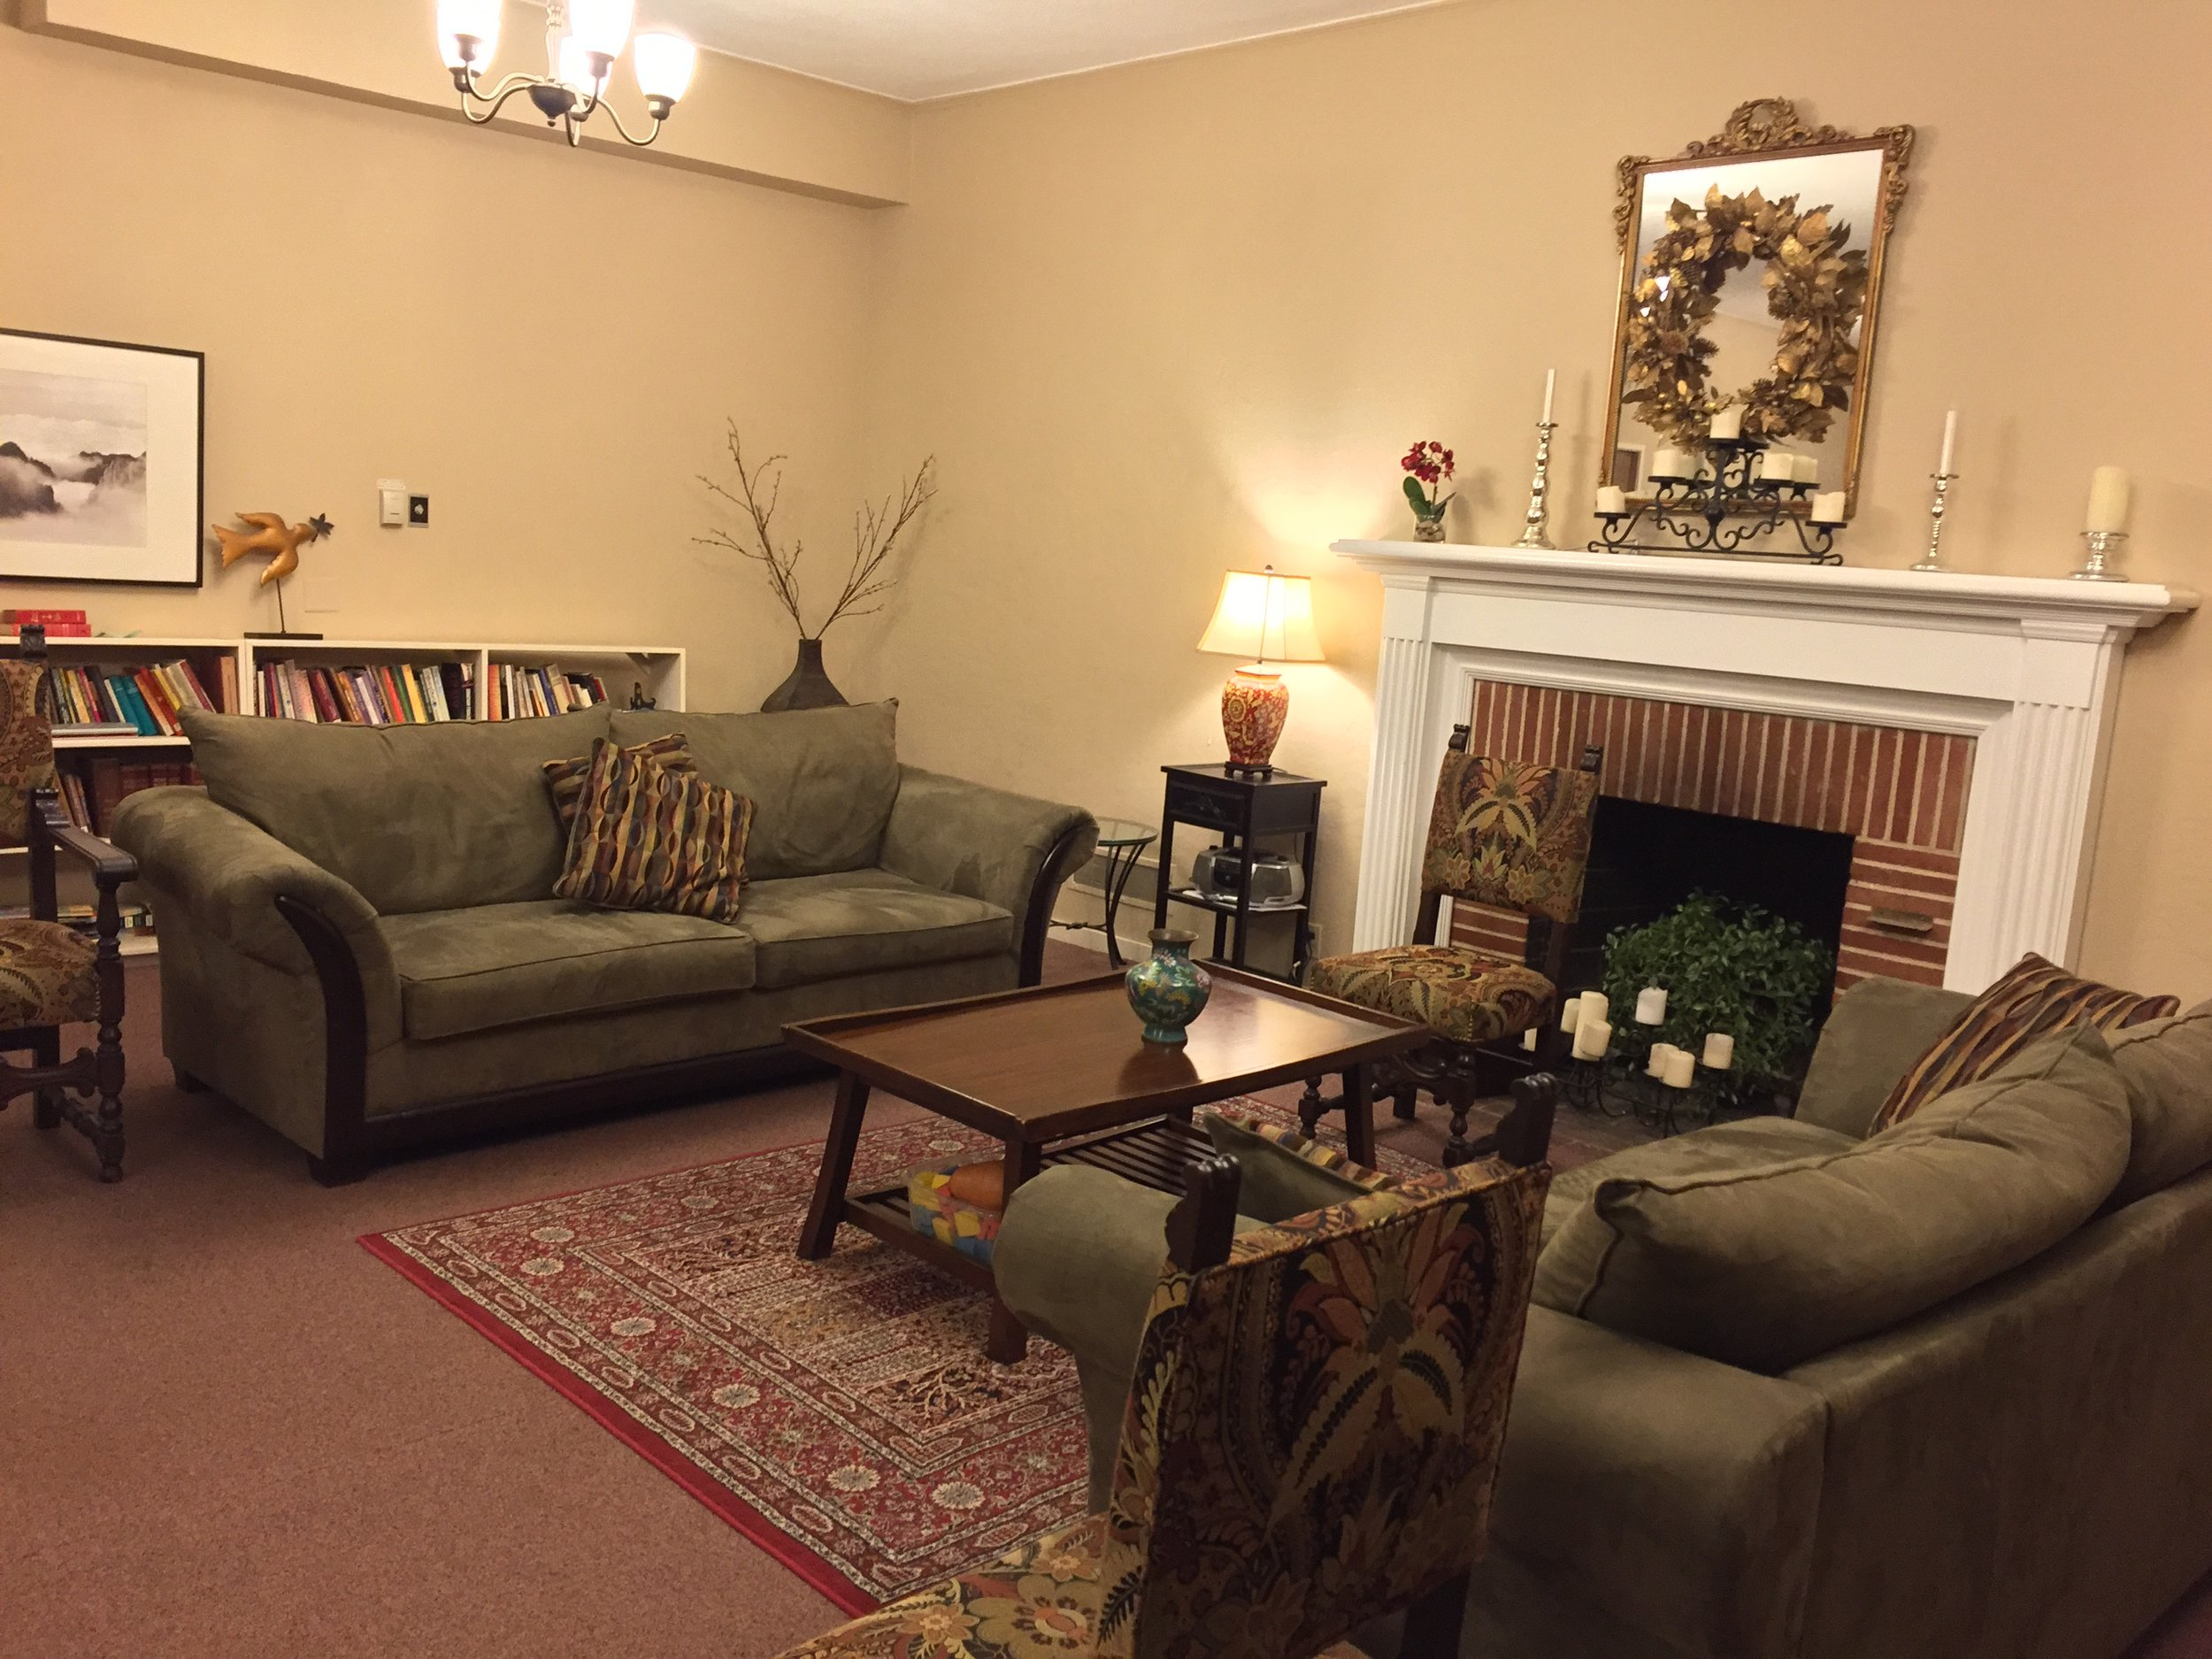 Fireside Room - The Fireside Room is an intimate gathering space for 5-45. Arranged in a living room style, the 3 couches, 4 armchairs, and various stackable chairs make a cozy place for conversation, presentation, meeting, or even knitting!